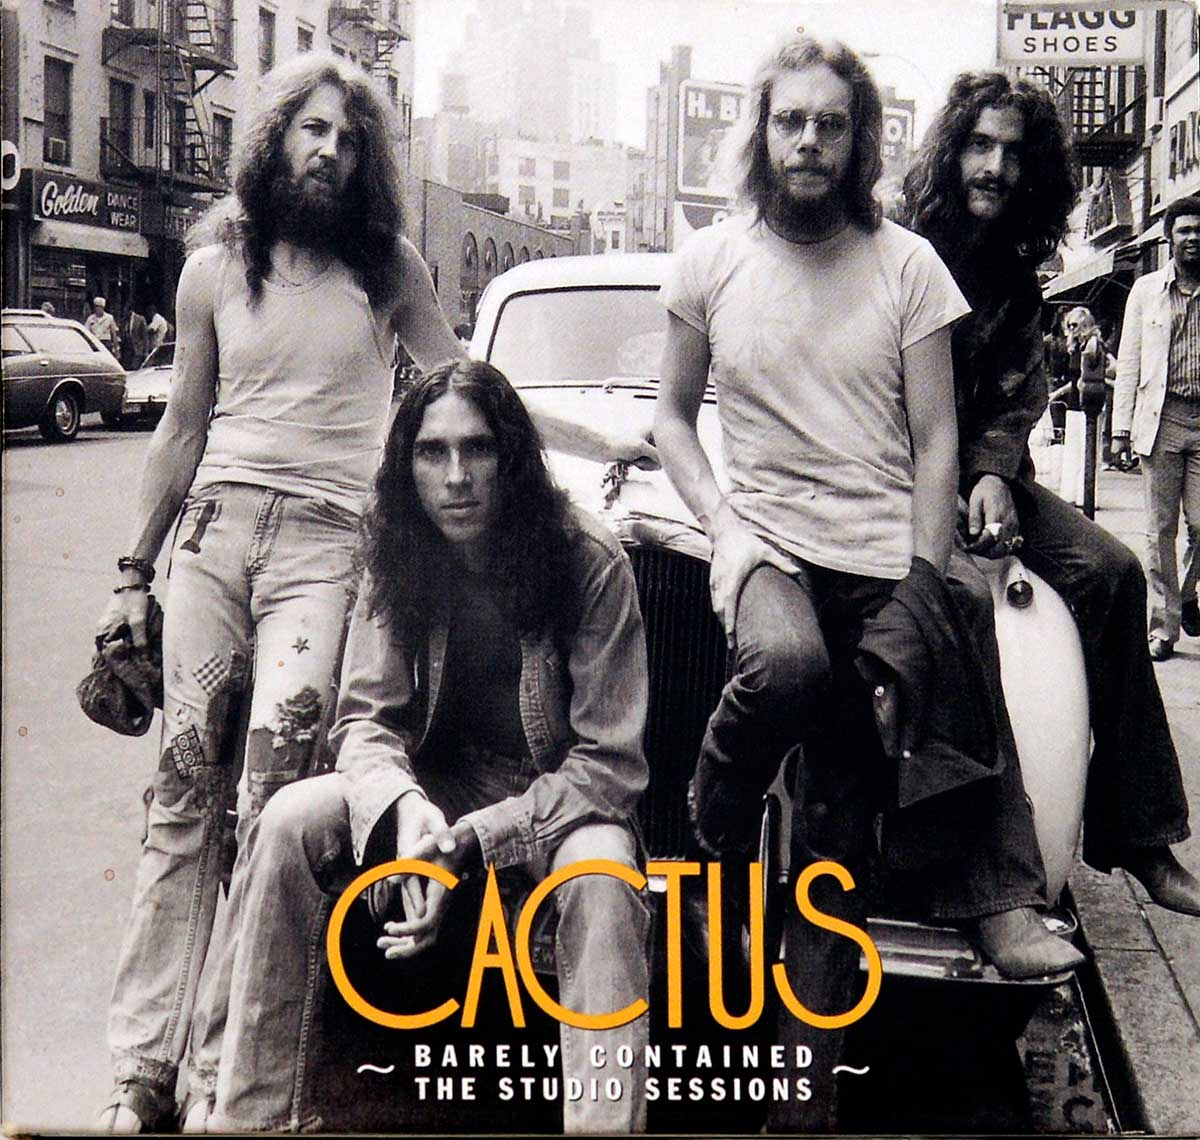 CD Album Front Cover Photo of CACTUS Barely Contained – The Studio Sessions 2CD Limited Edition 2CD